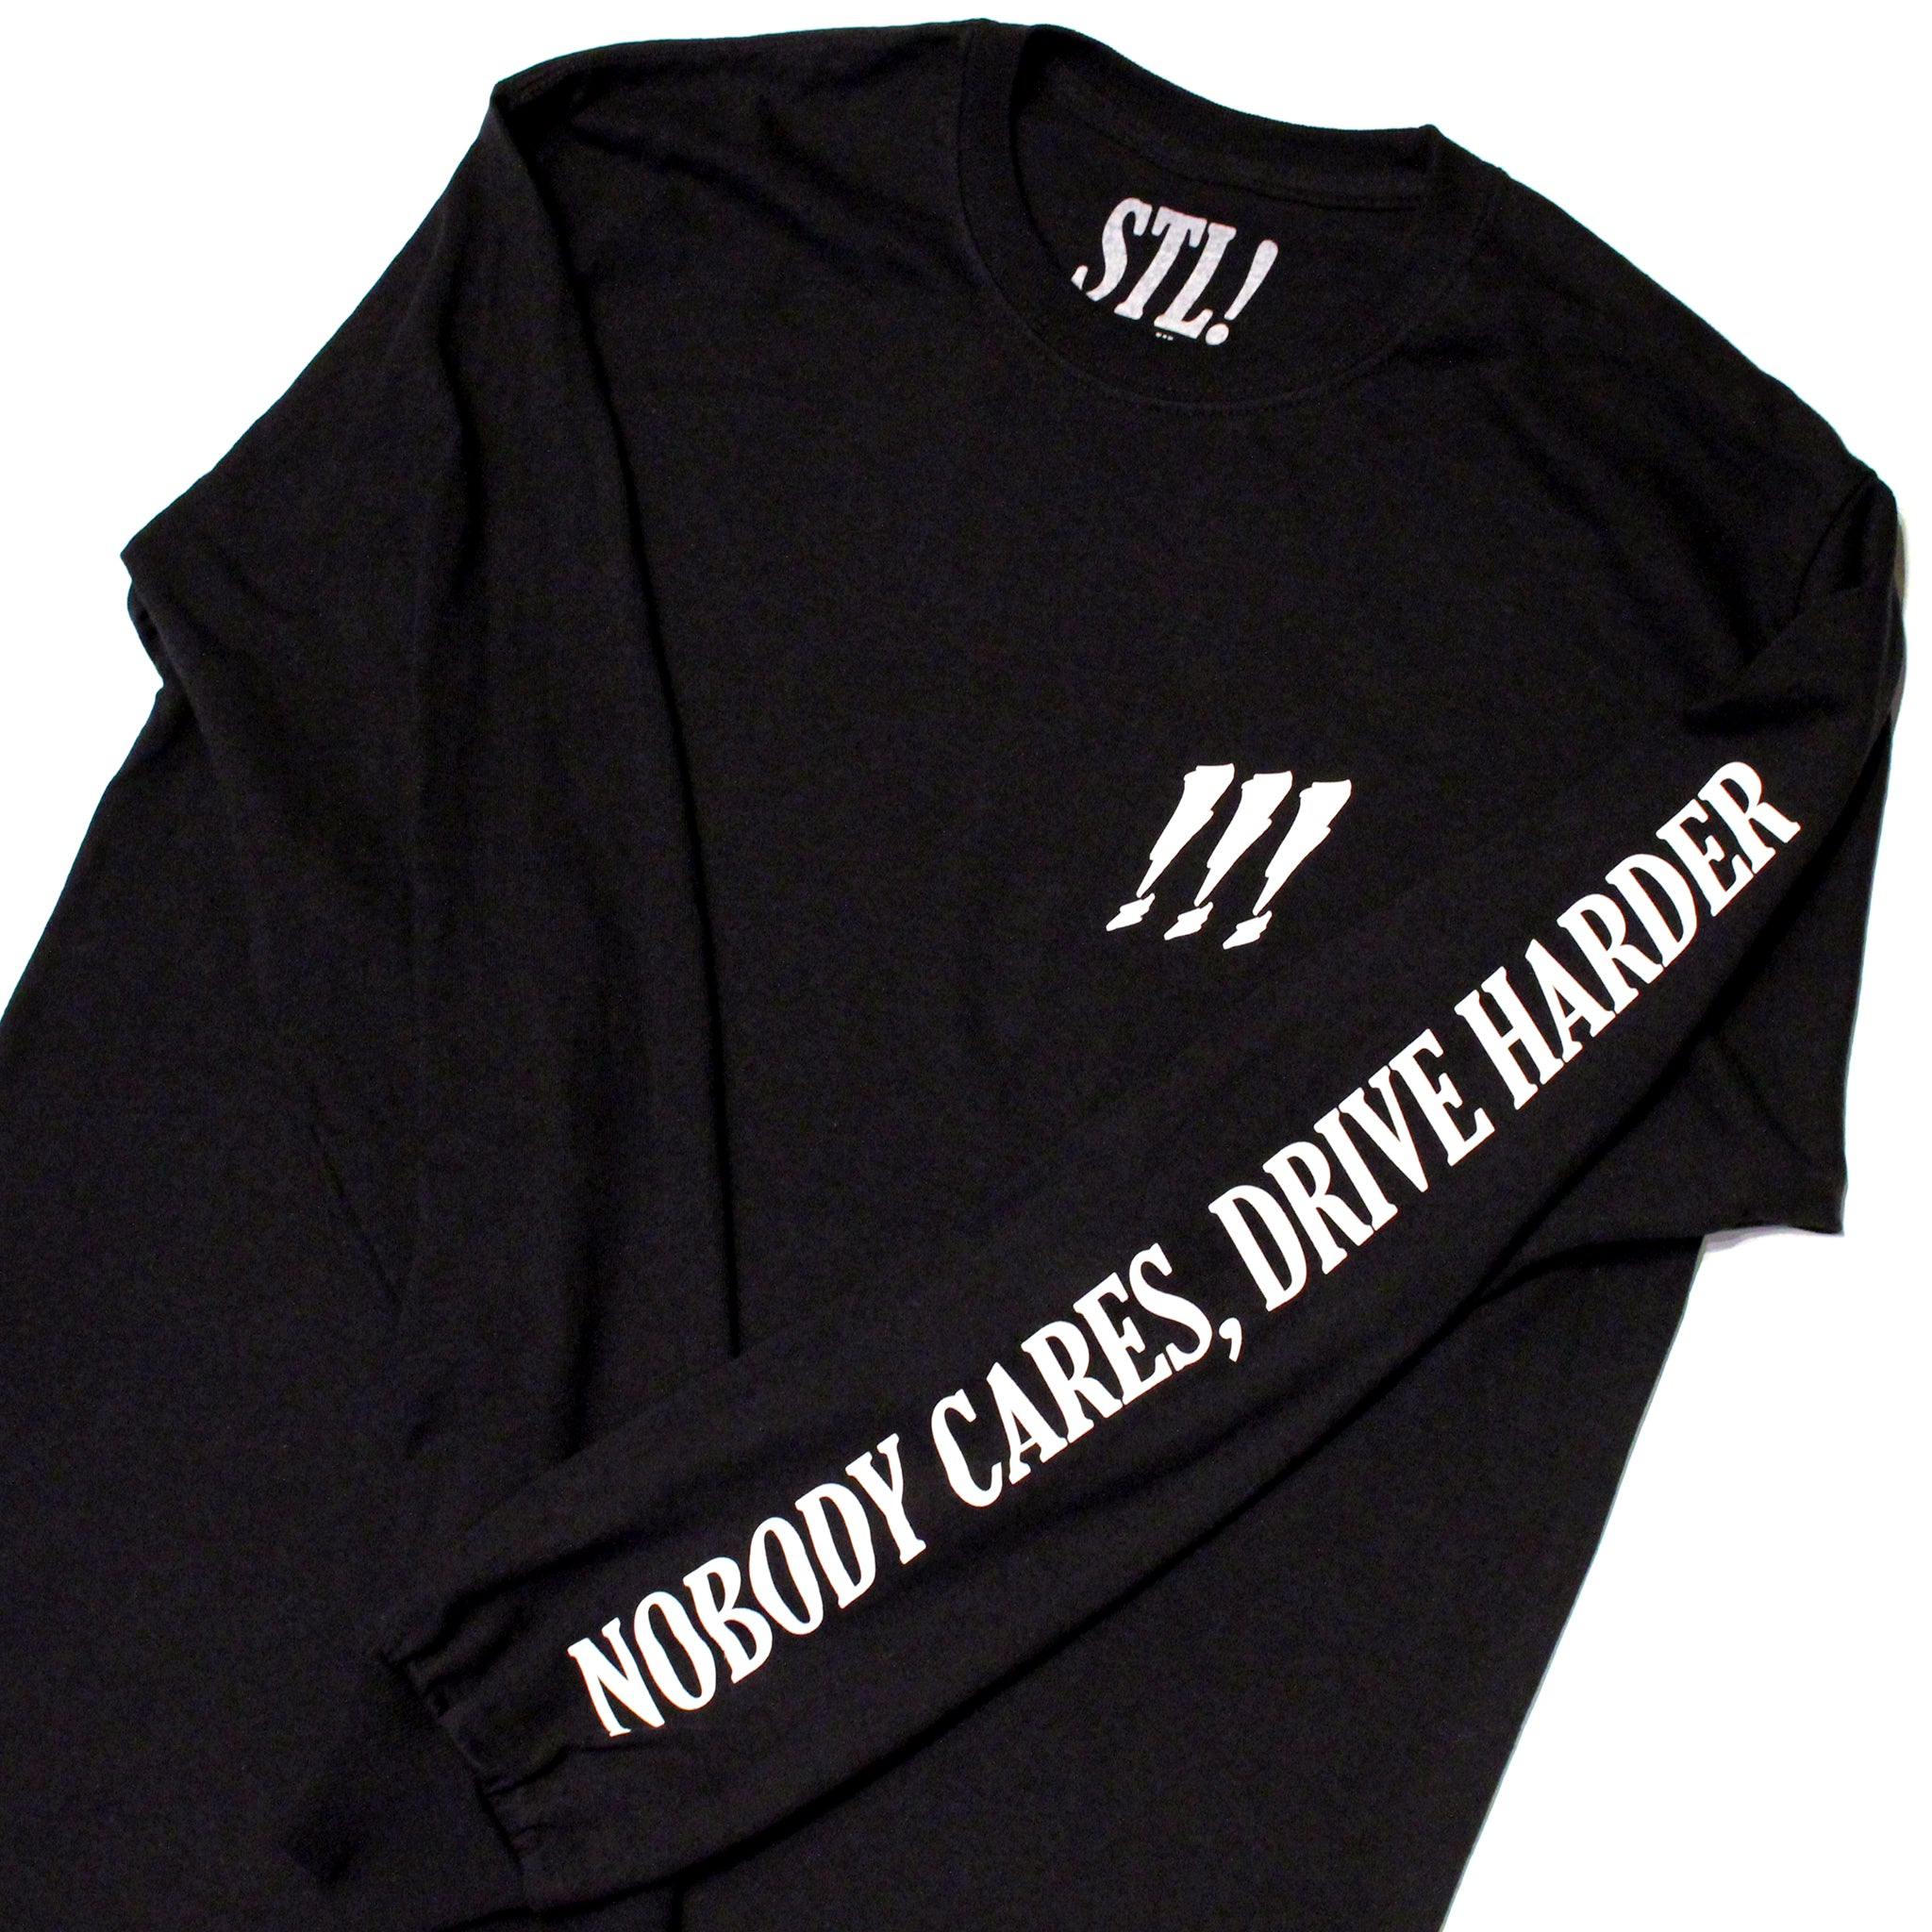 STL! Black/White Long Sleeve T-Shirt